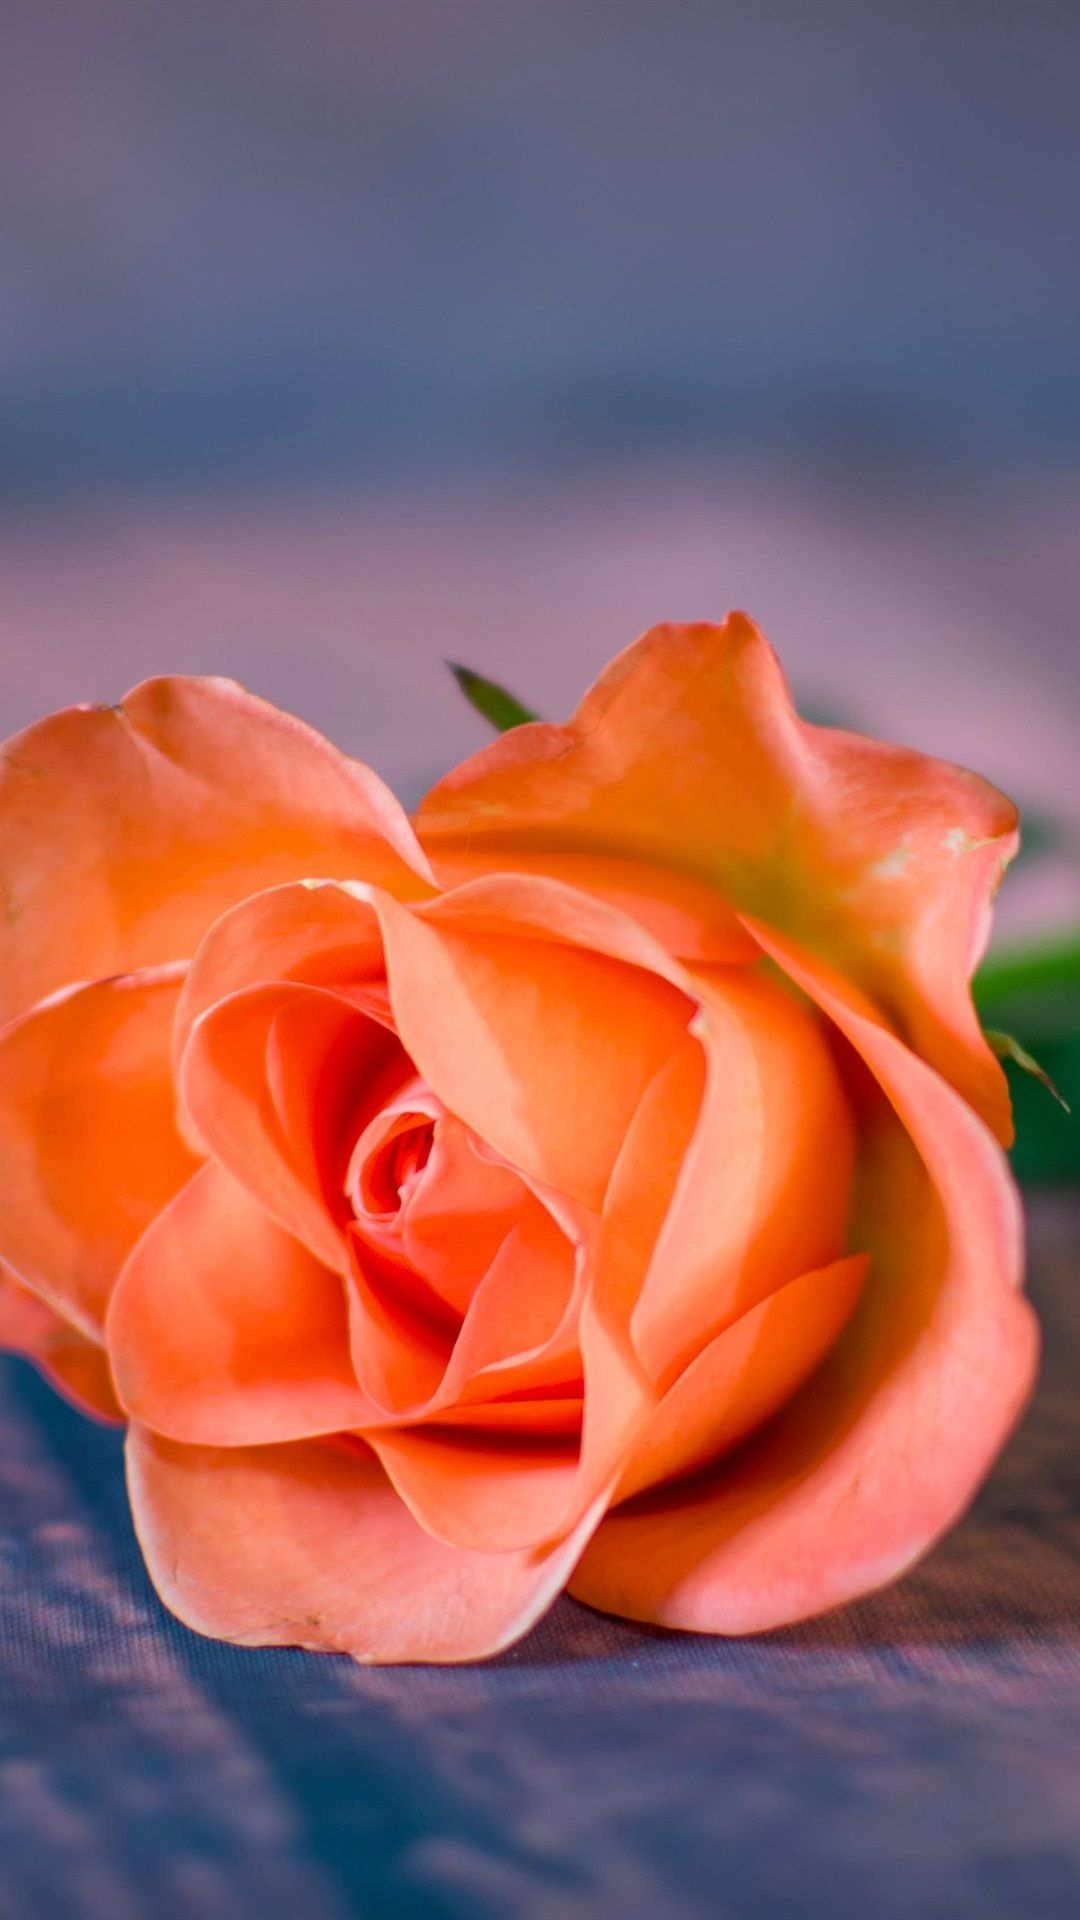 1080x1920 Orange rose close-up, bokeh 1080x1920 iPhone 8/7/6/6S Plus wallpaper ...